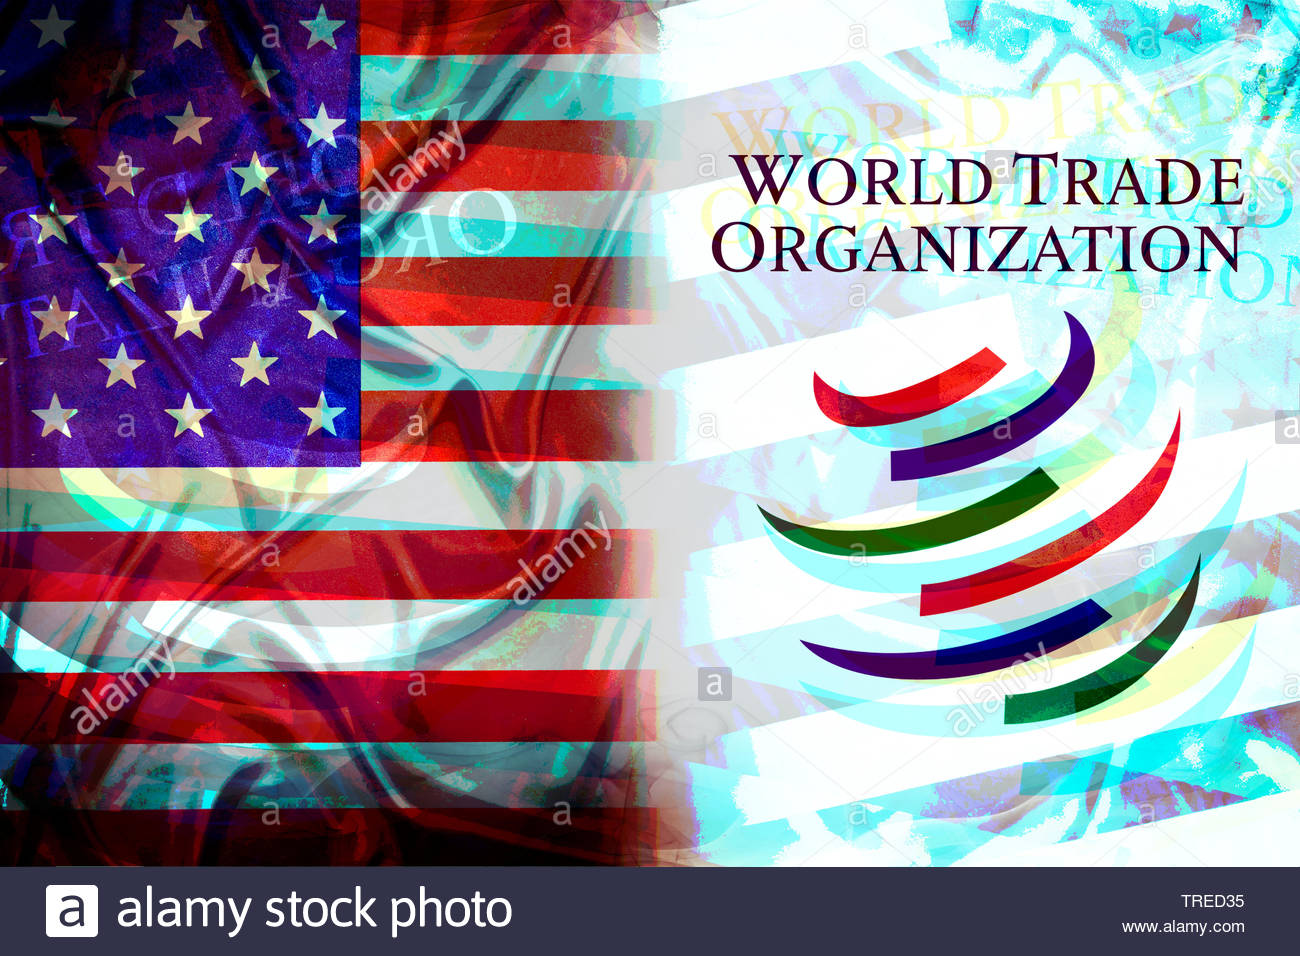 US flag and WTO logo next to each other - trade conflict Stock Photo